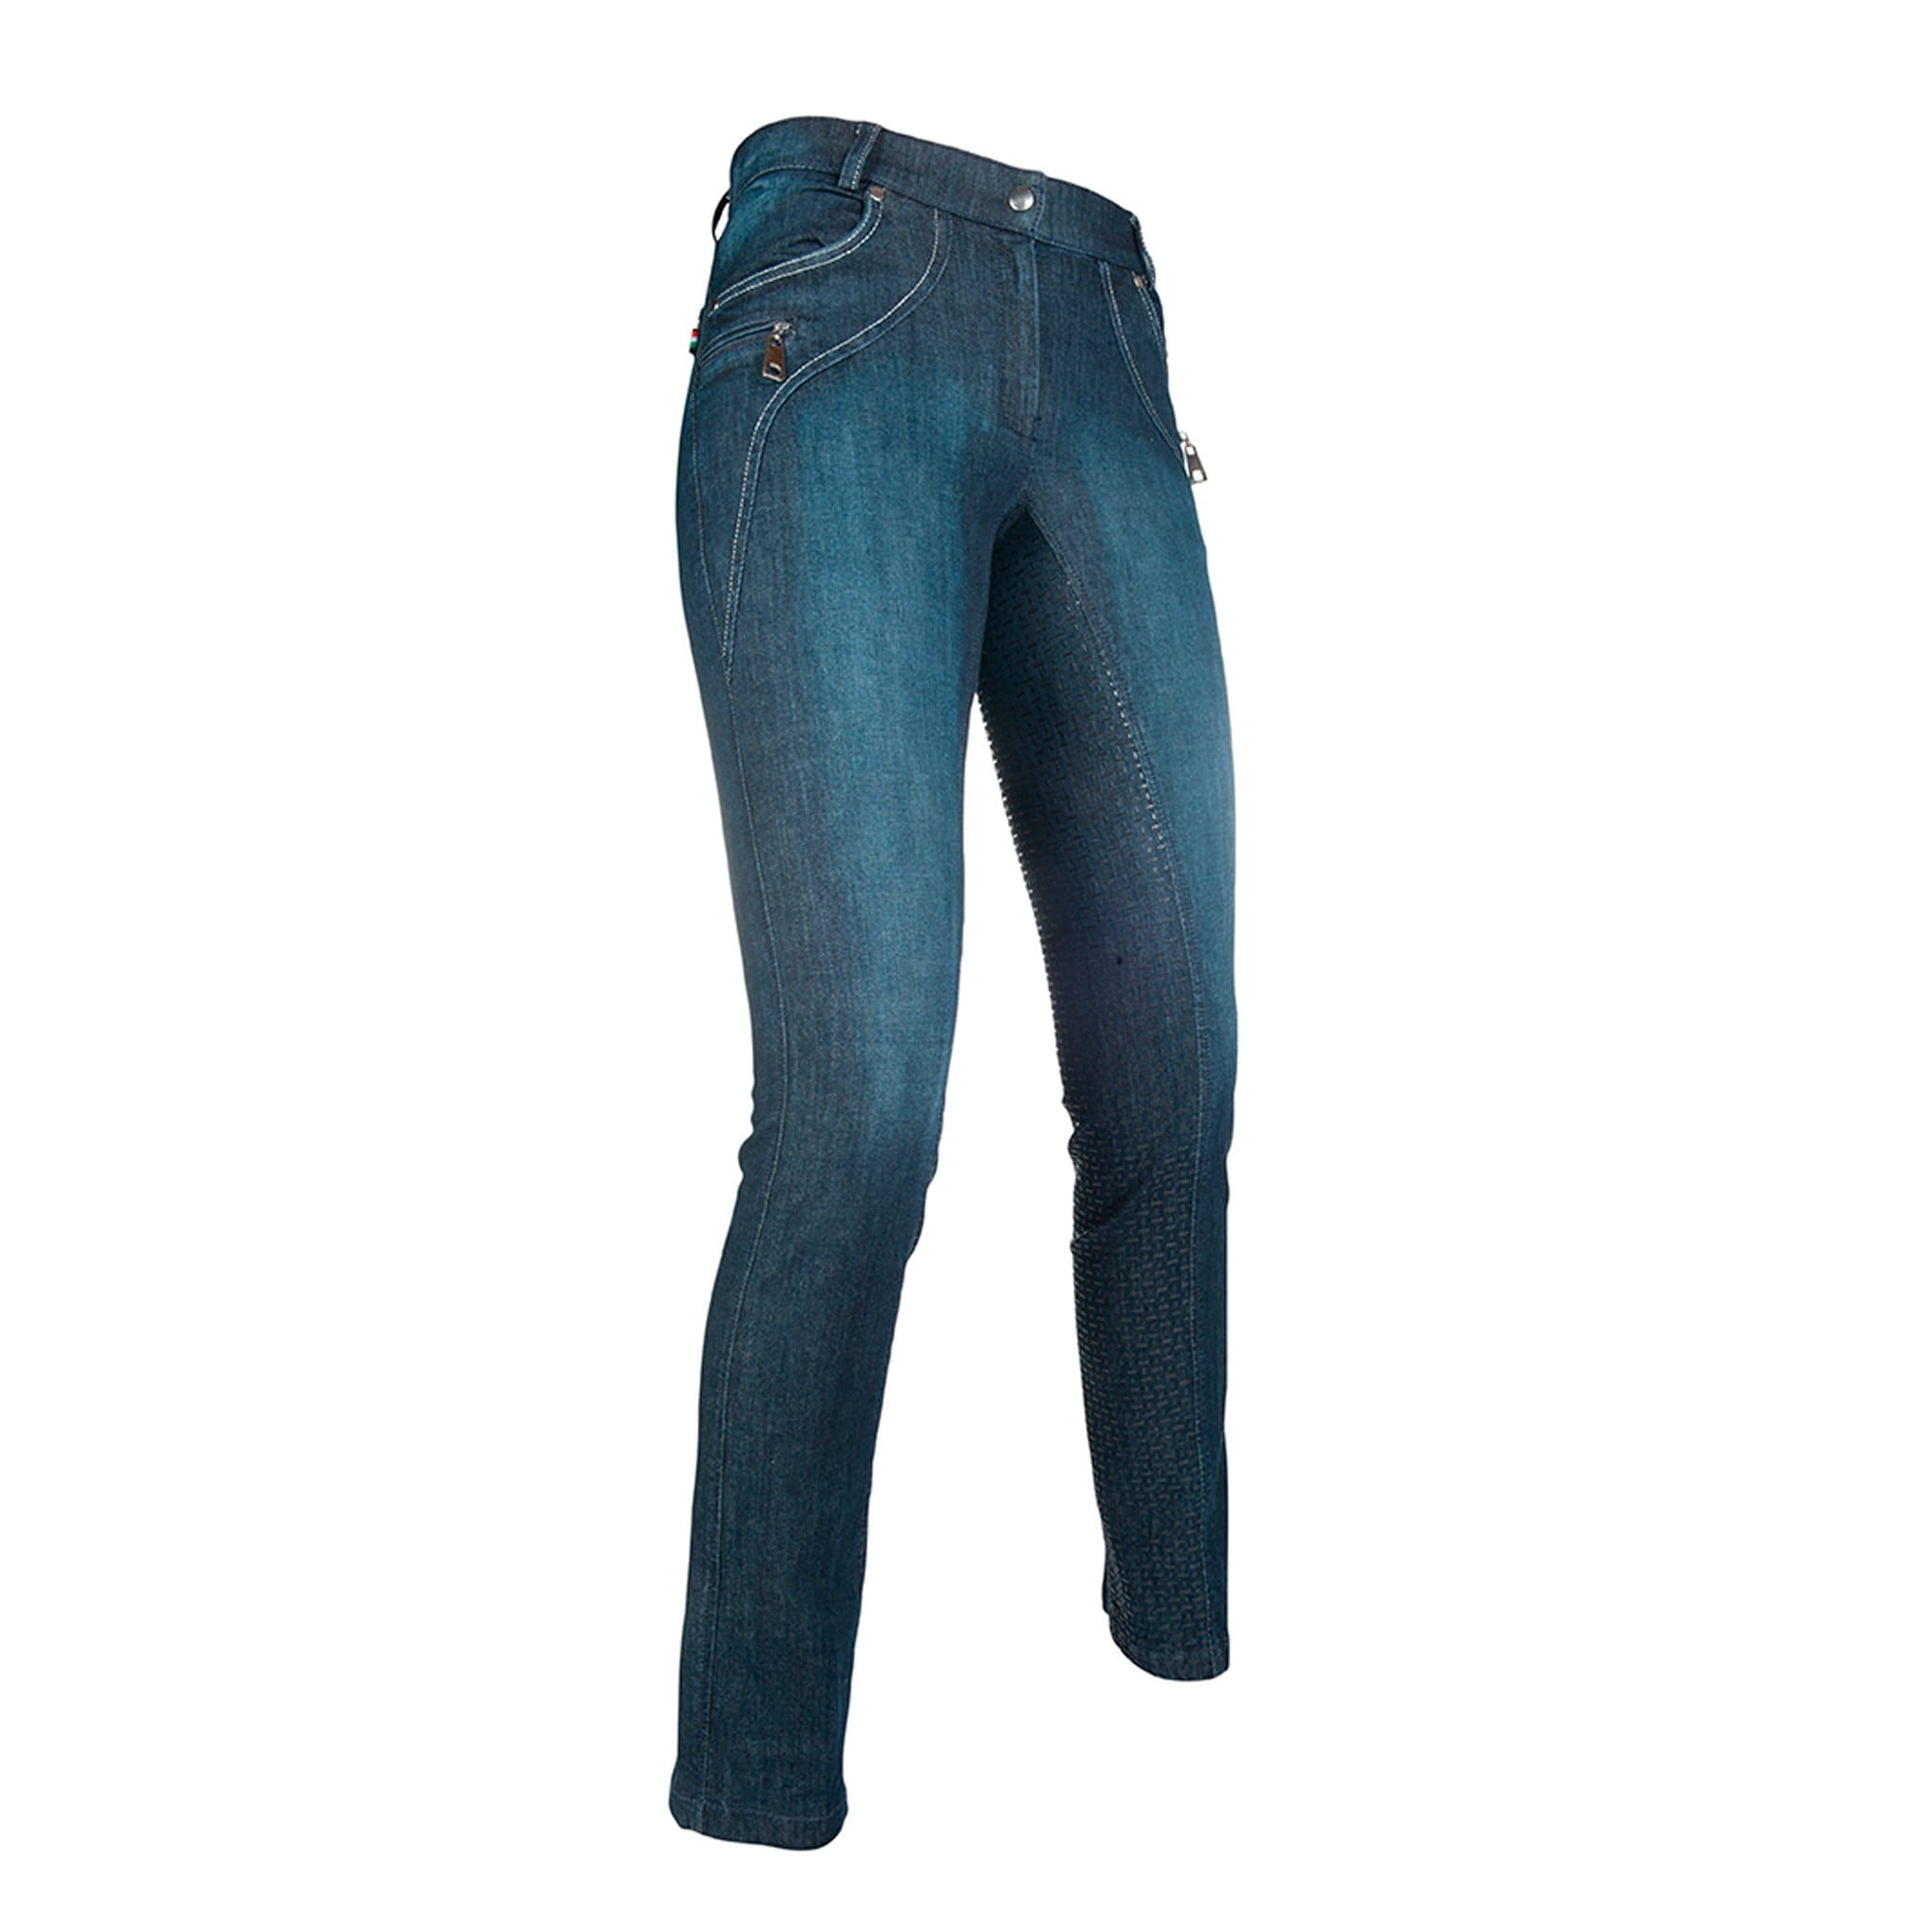 HKM Lauria Garrelli Limoni Denim Straight Leg Silicone Full Seat Jodhpur Breeches 10628 Front Right